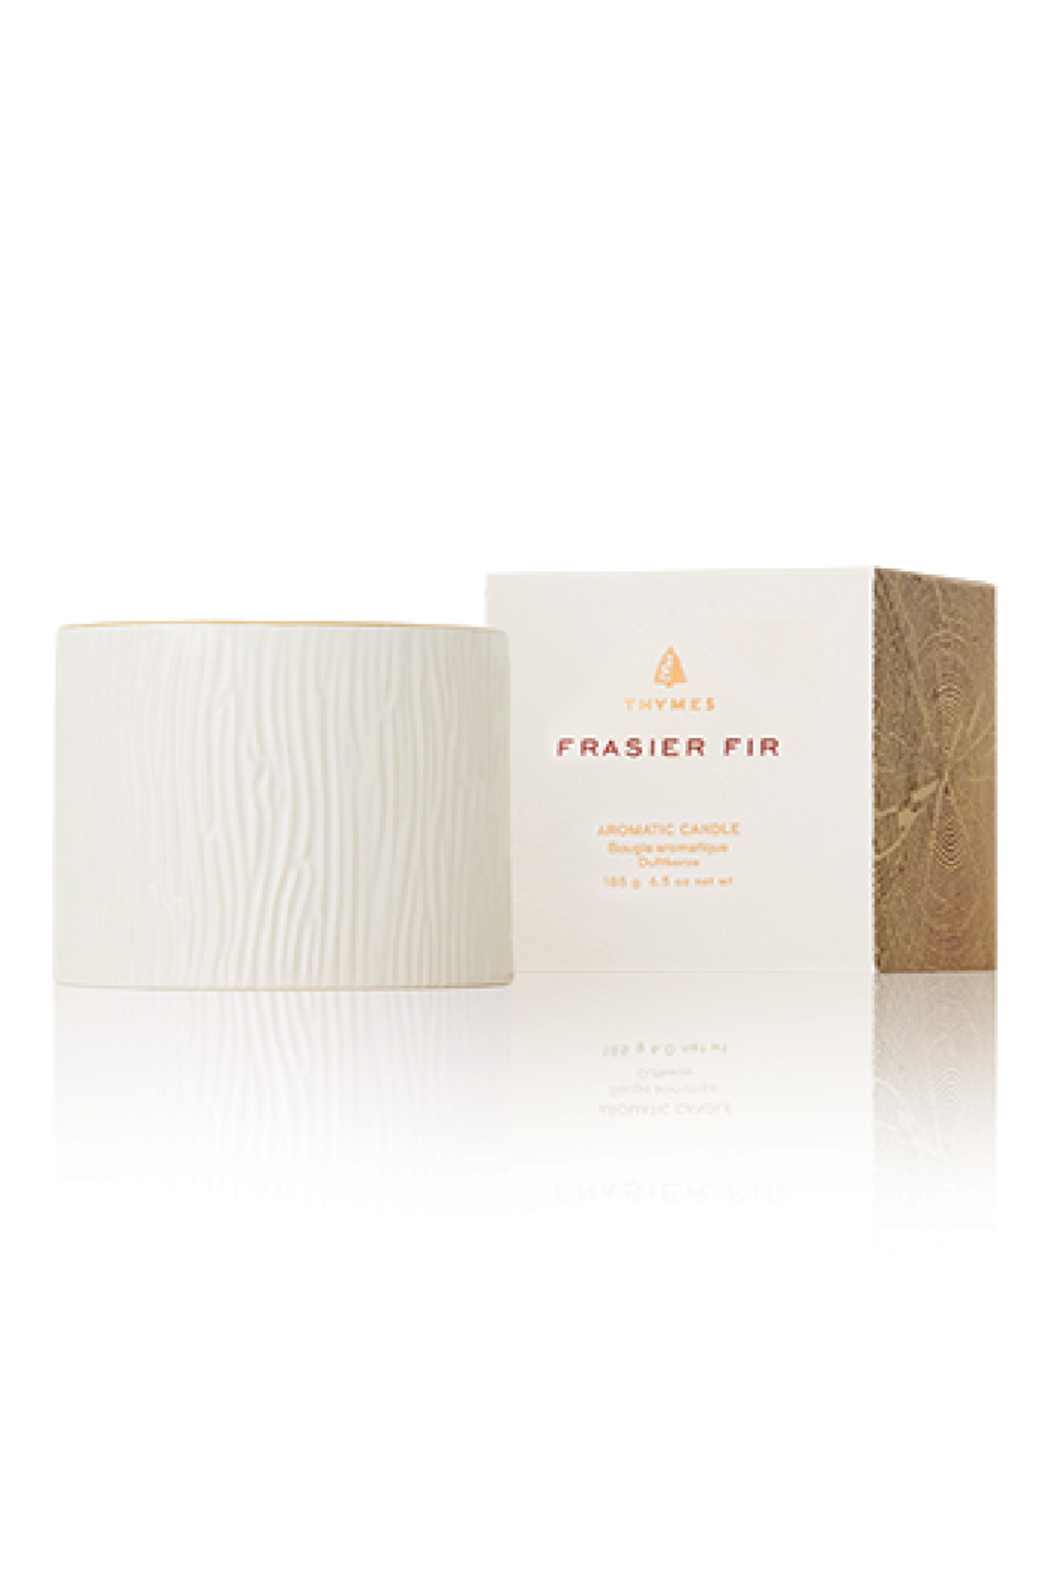 Thymes 6 OZ FRASIER FIR GILDED CERAMIC POURED CANDLE - Main Image